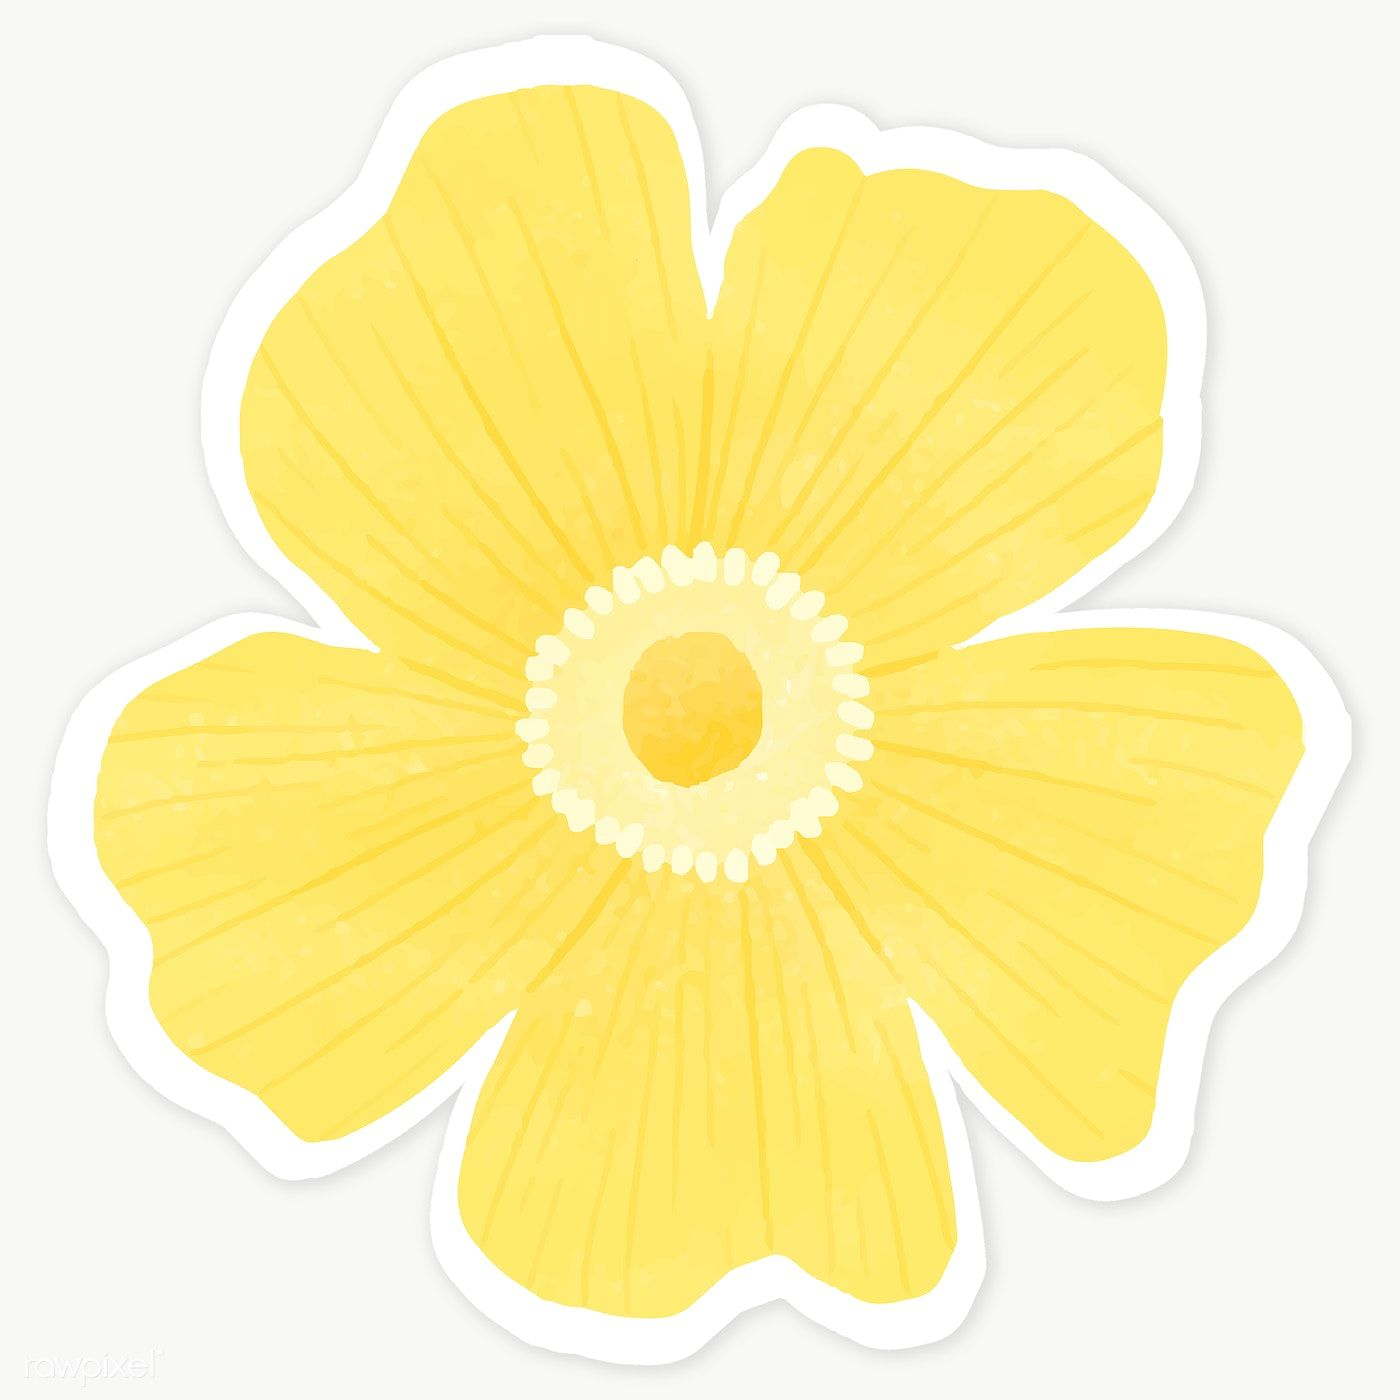 Flowers Stickers Png - Download premium illustration of Yellow flower sticker transparent ...